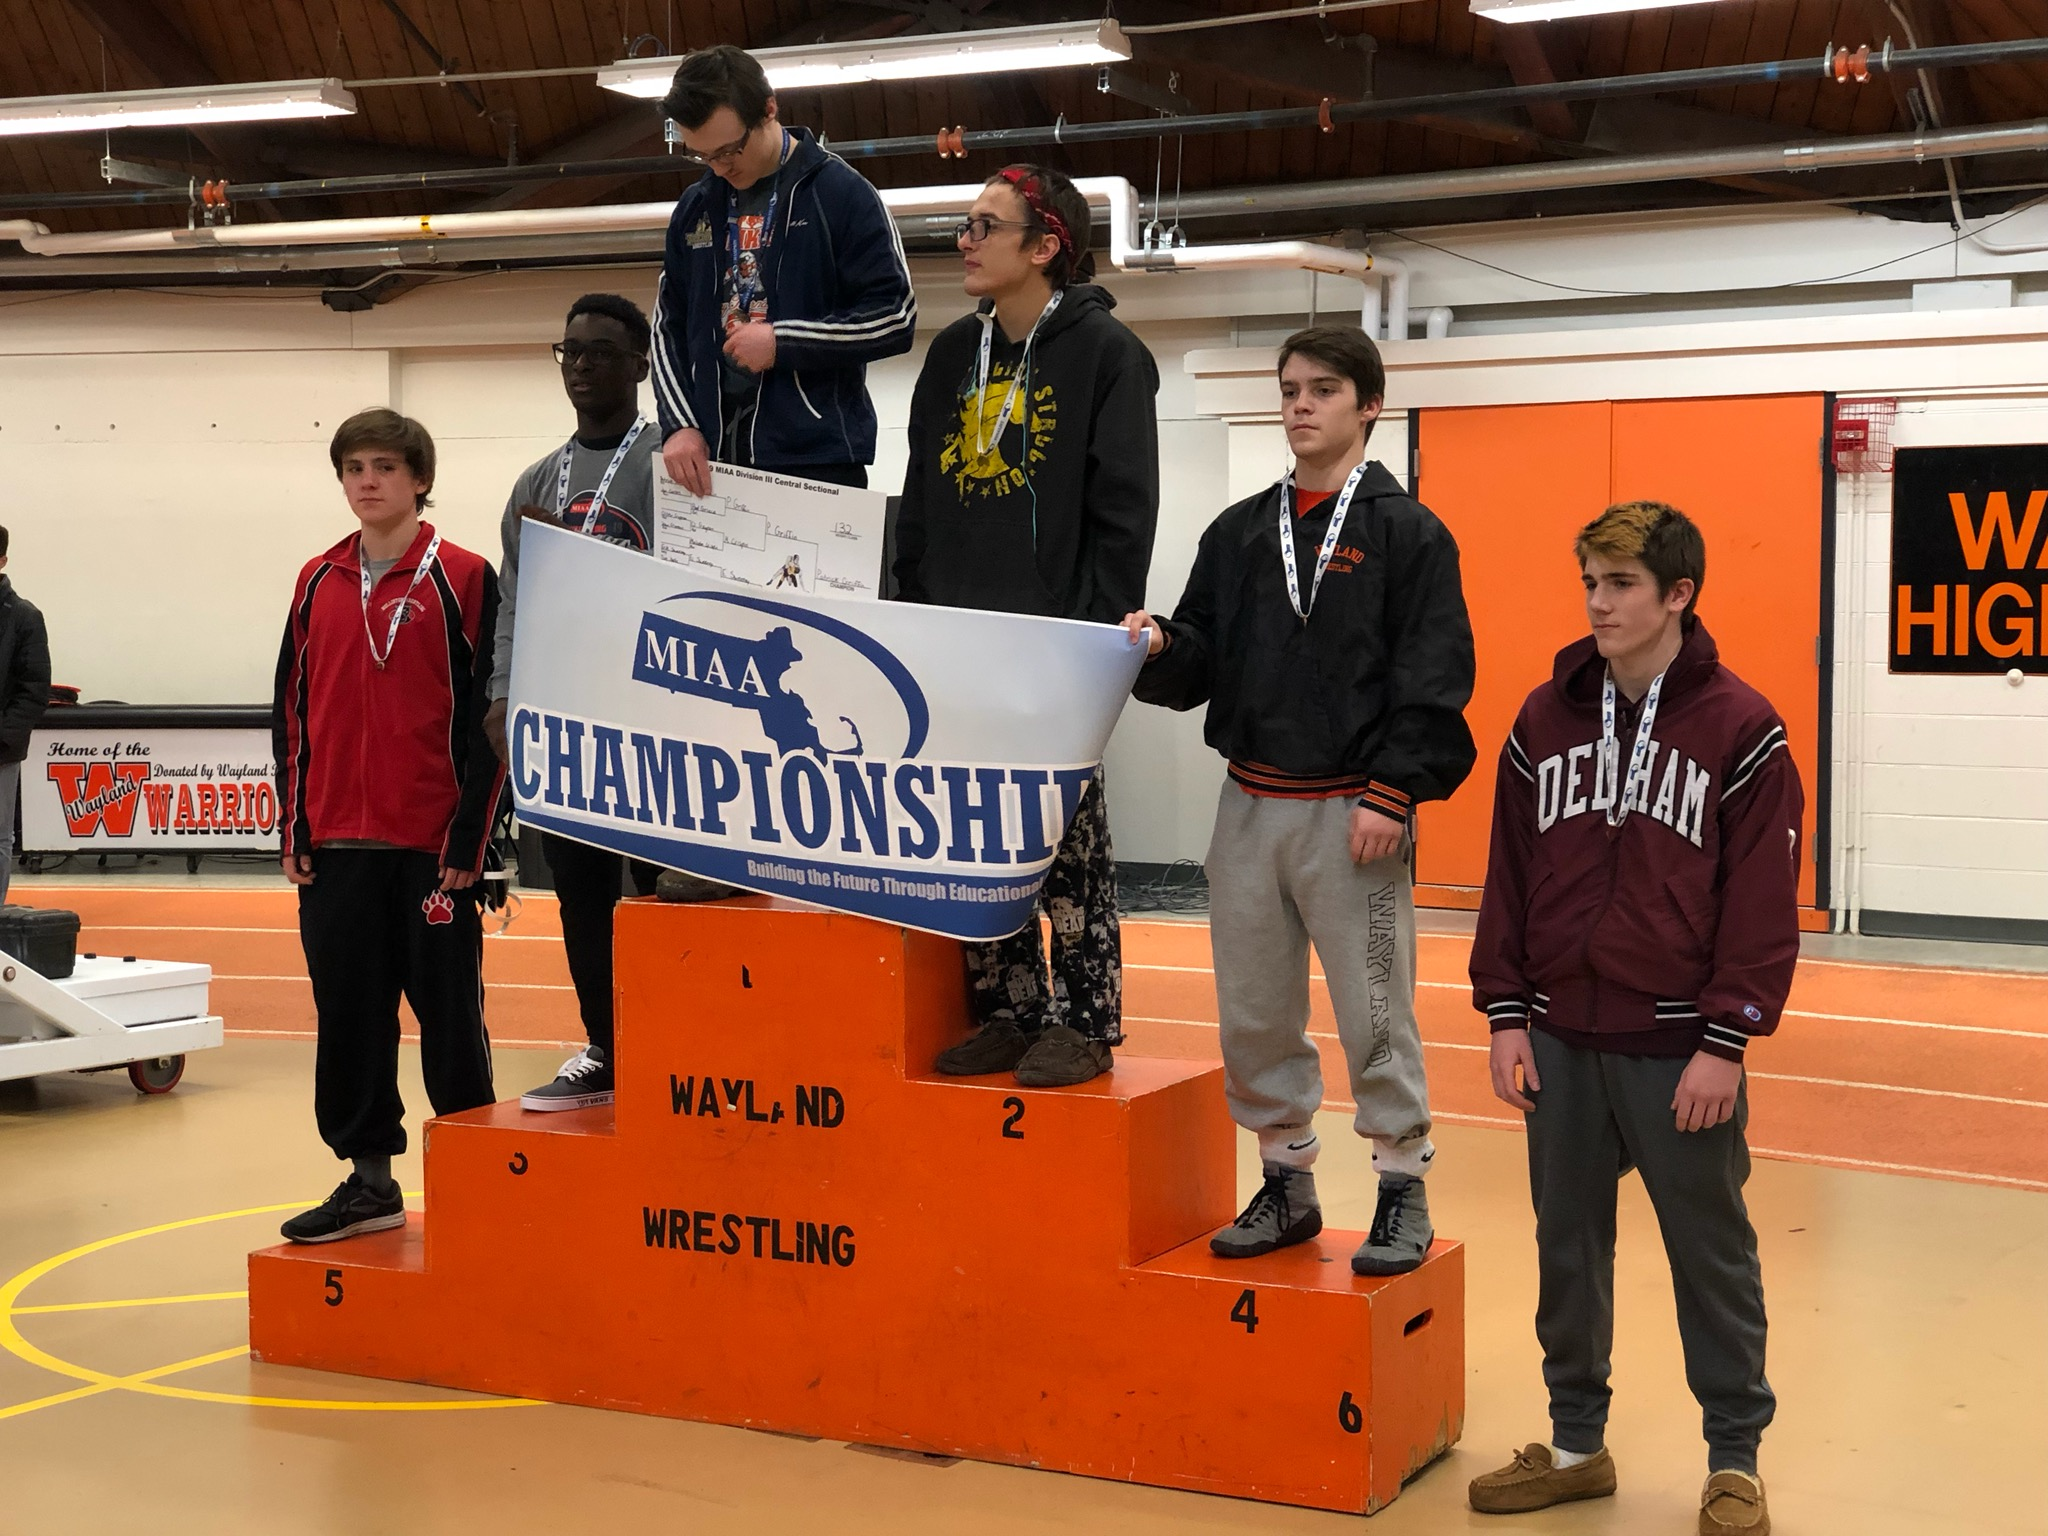 Malcolm Chrispin (Boston Latin Academy) places 3rd at the MIAA Division 3 Central Championships, becoming the first-ever state qualifier for his school.